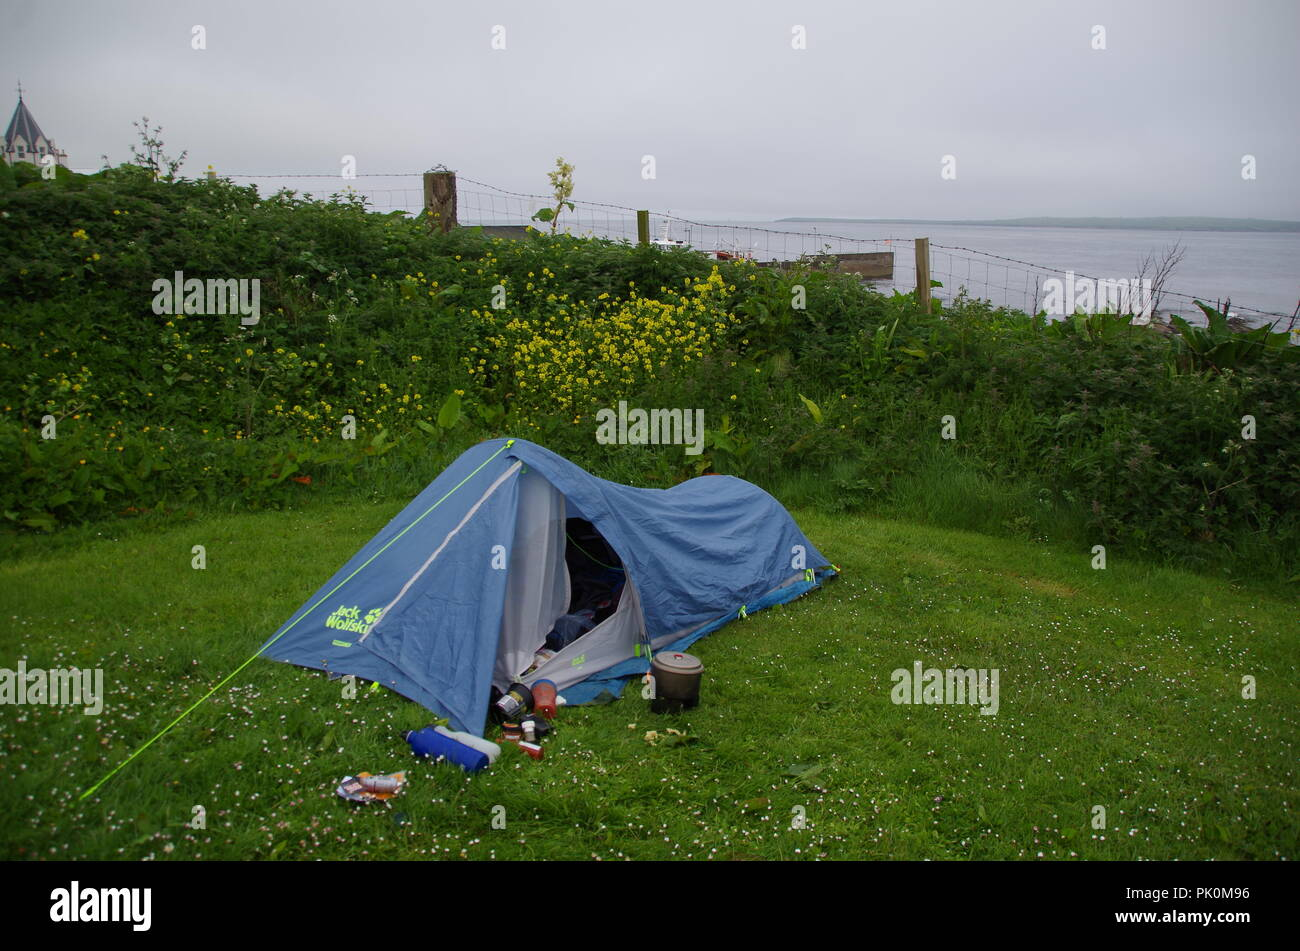 Campsite @ The start of a long hike. John o' groats (Duncansby head) to lands end. Cornwall. End to end trail. Caithness. Highlands. Scotland. UK - Stock Image